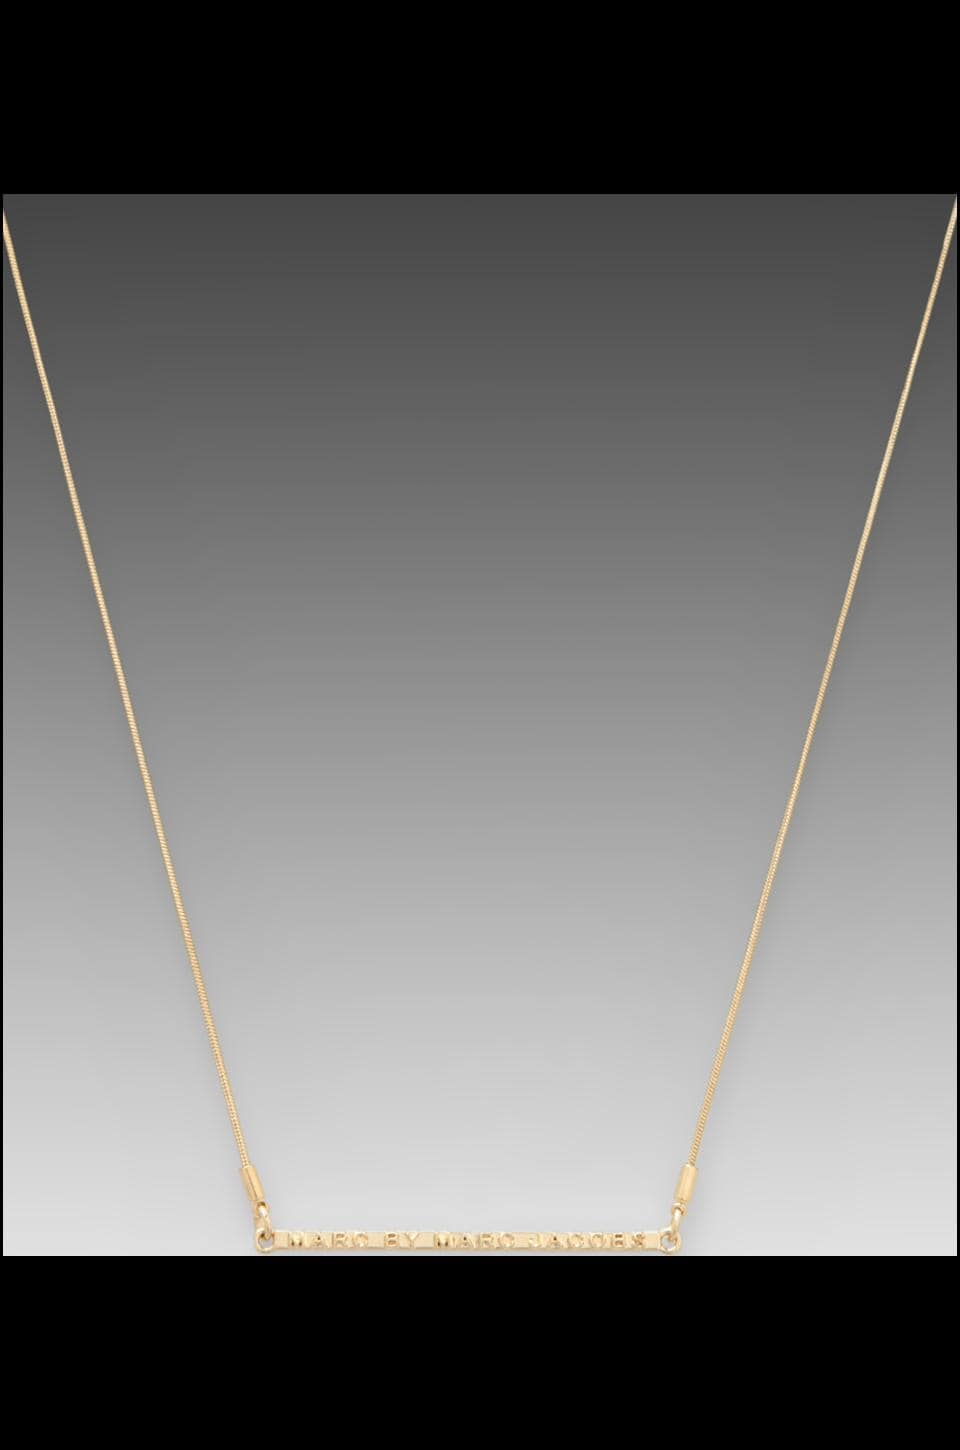 Marc by Marc Jacobs Letterpress Short Necklace in Oro